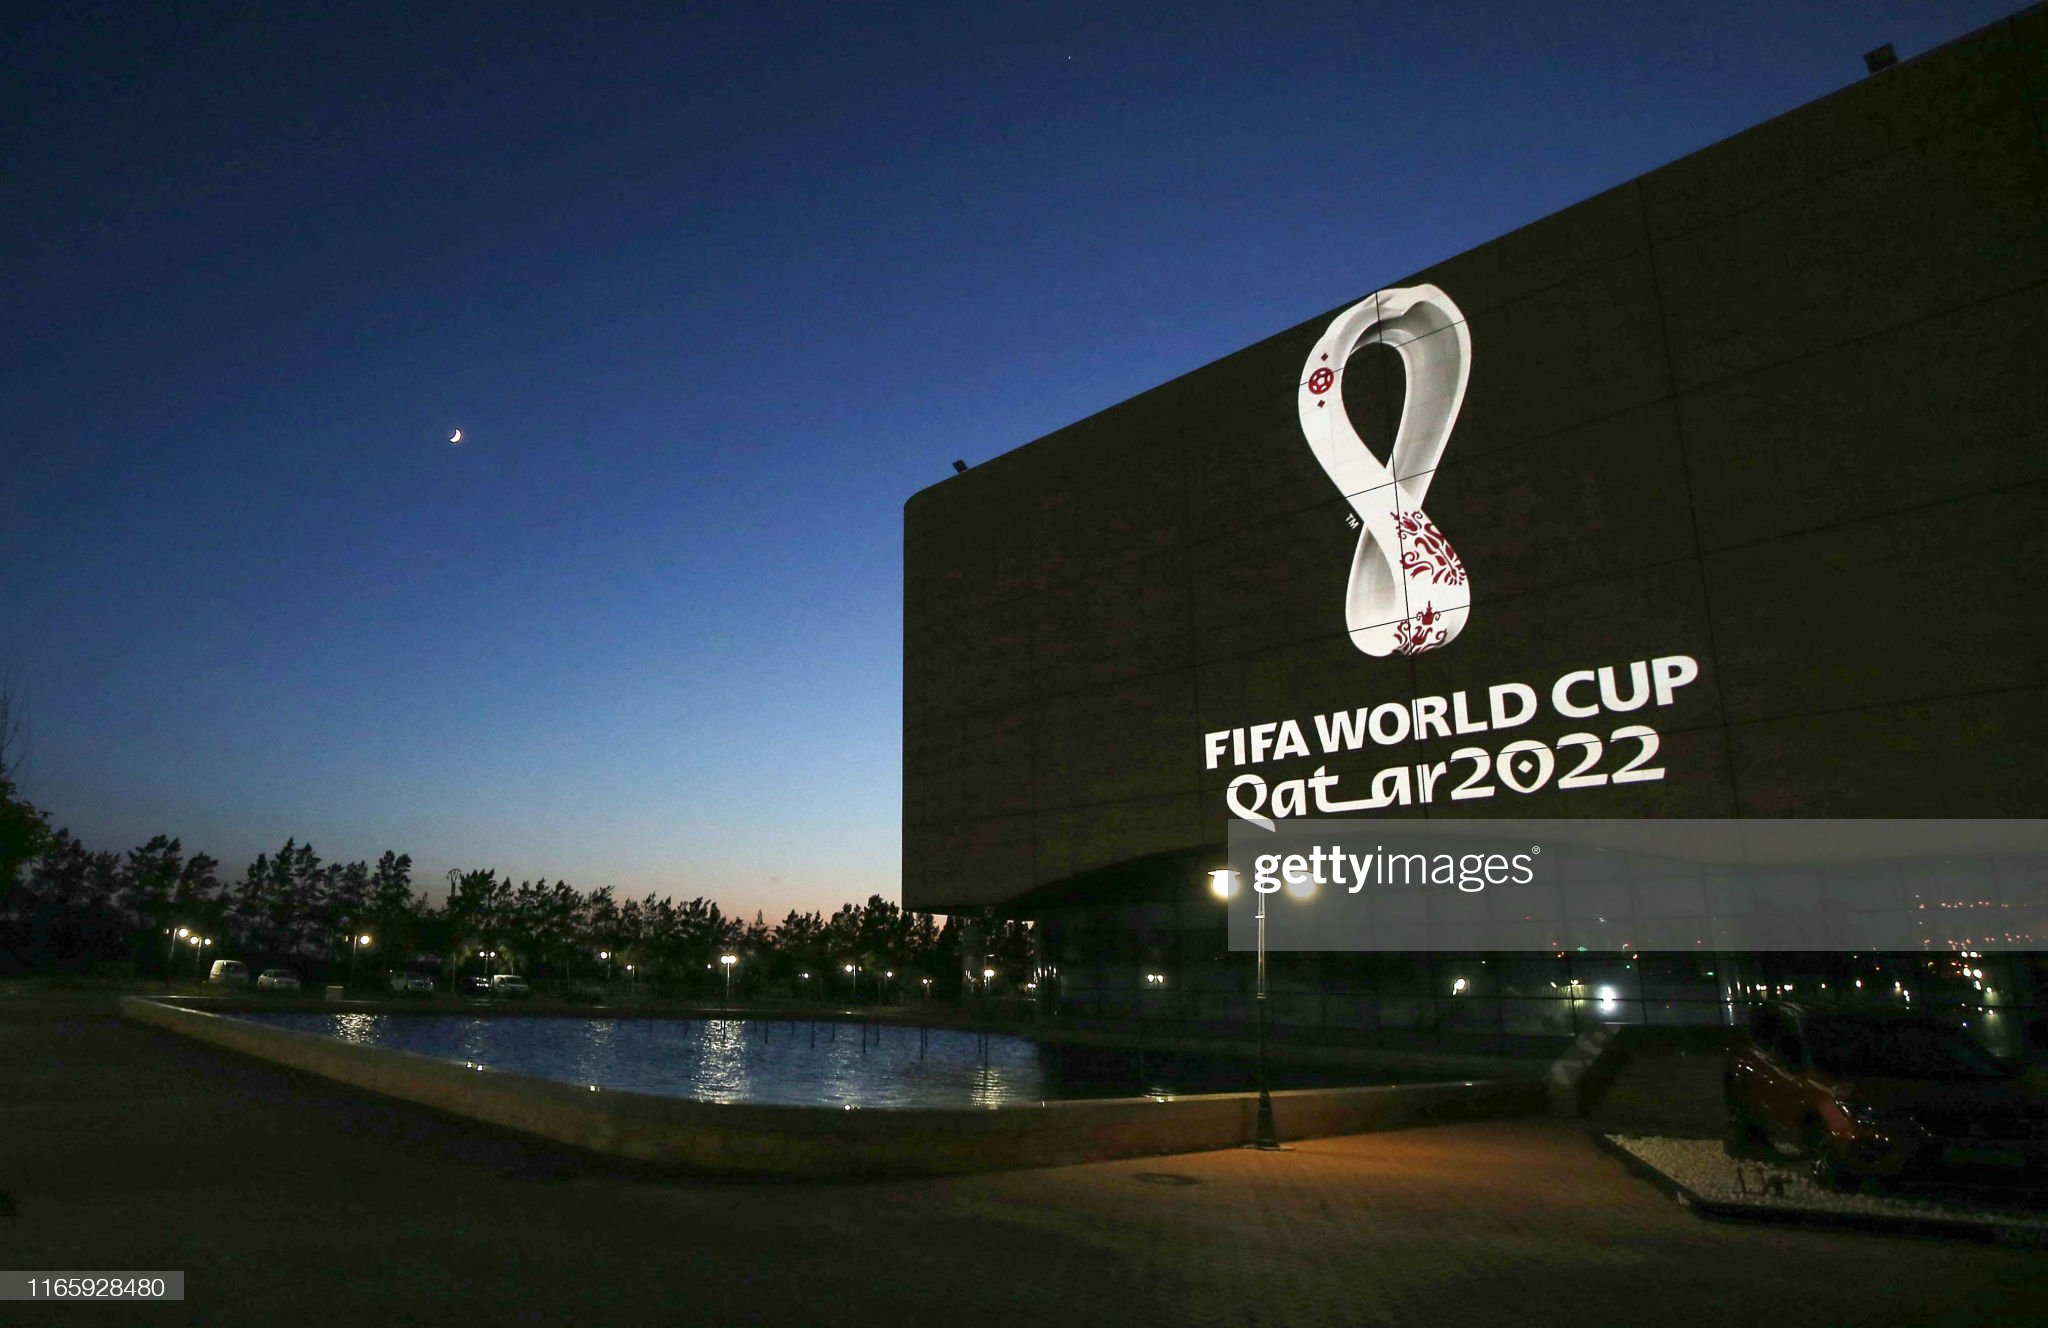 The ethical side of the 2022 FIFA World Cup